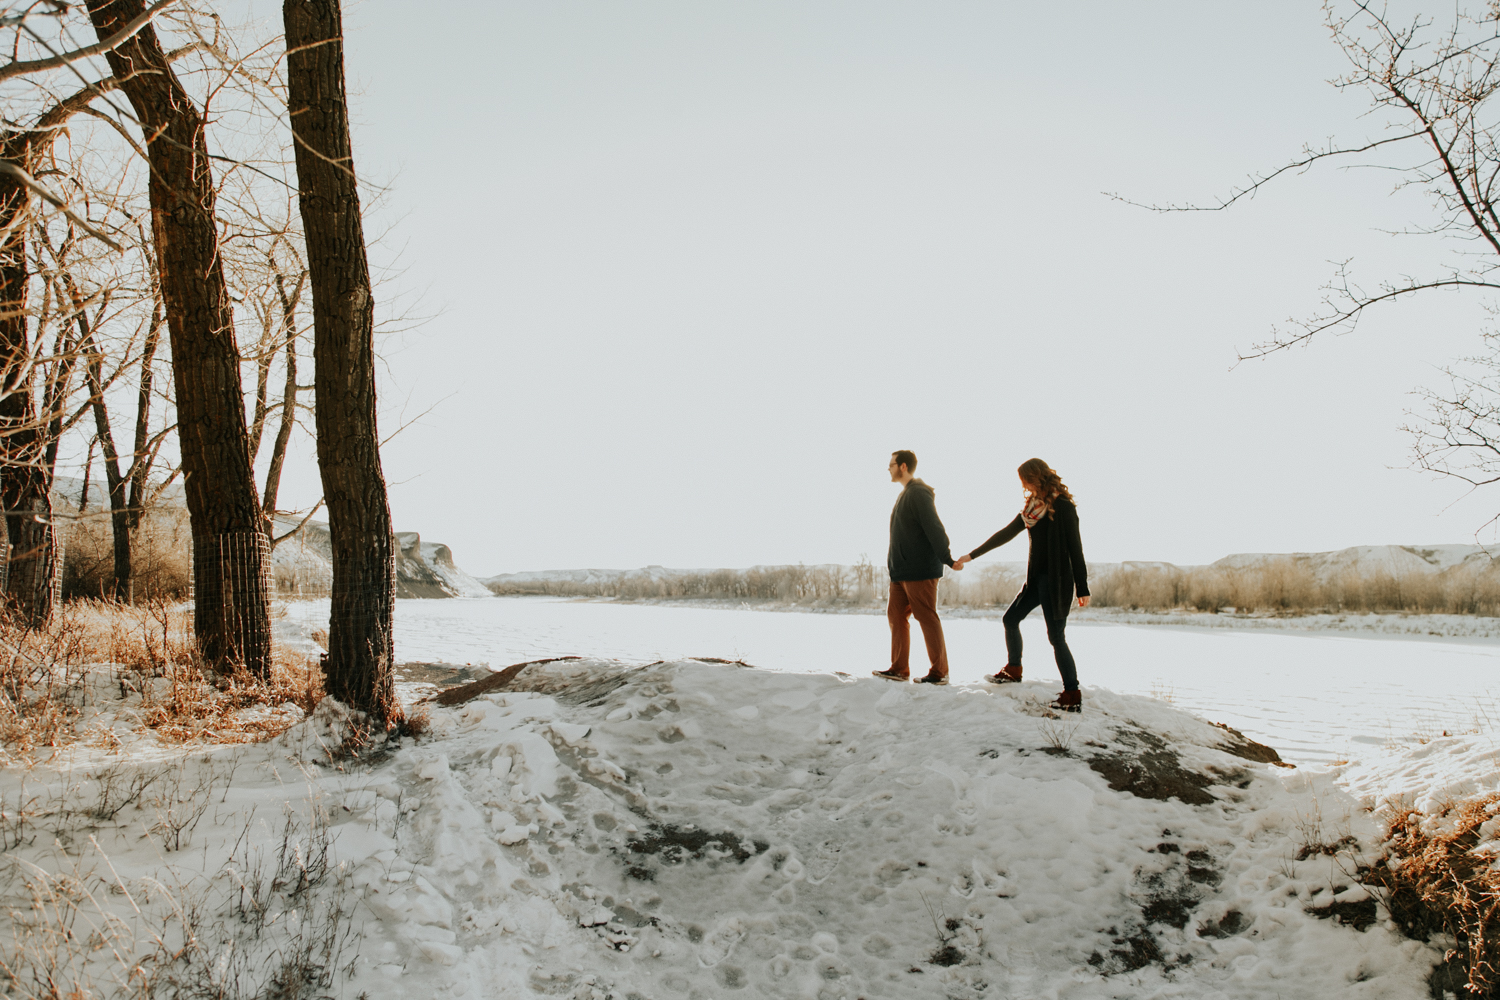 lethbridge-photography-love-and-be-loved-photographer-dan-tynnea-engagement-picture-image-photo-39.jpg